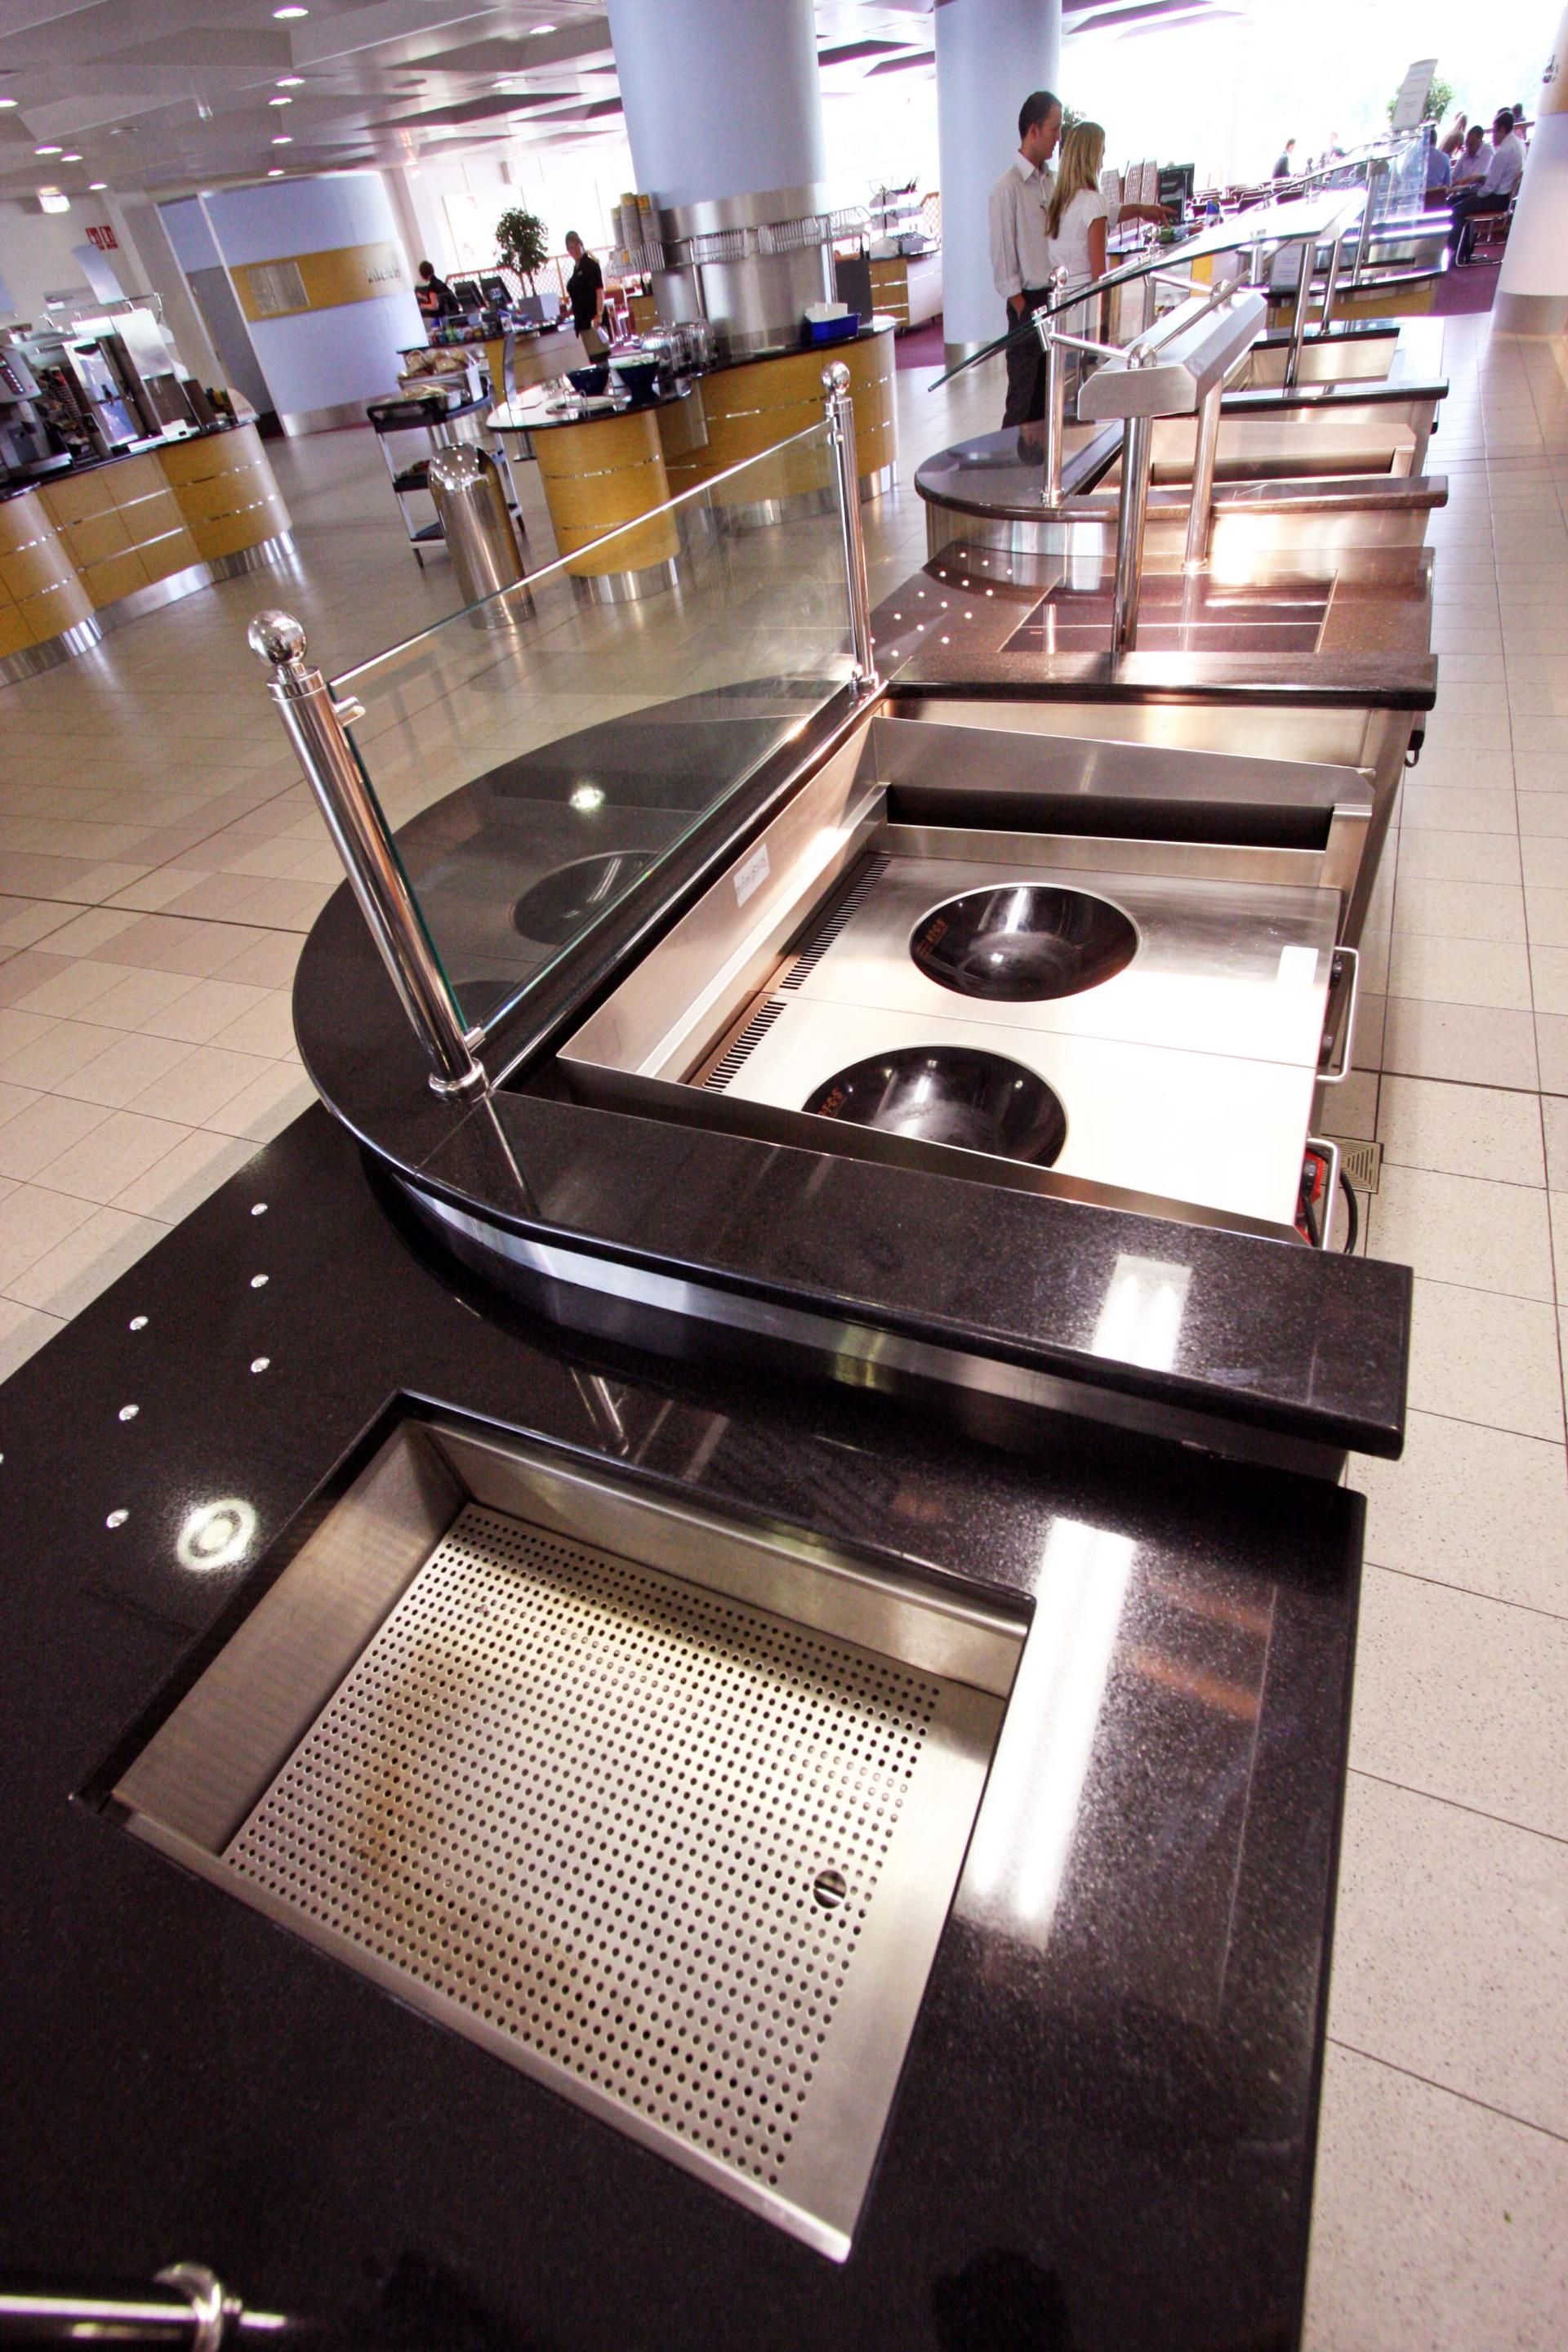 nationwide_swindon_staff restaurant_servery_induction wok (3)